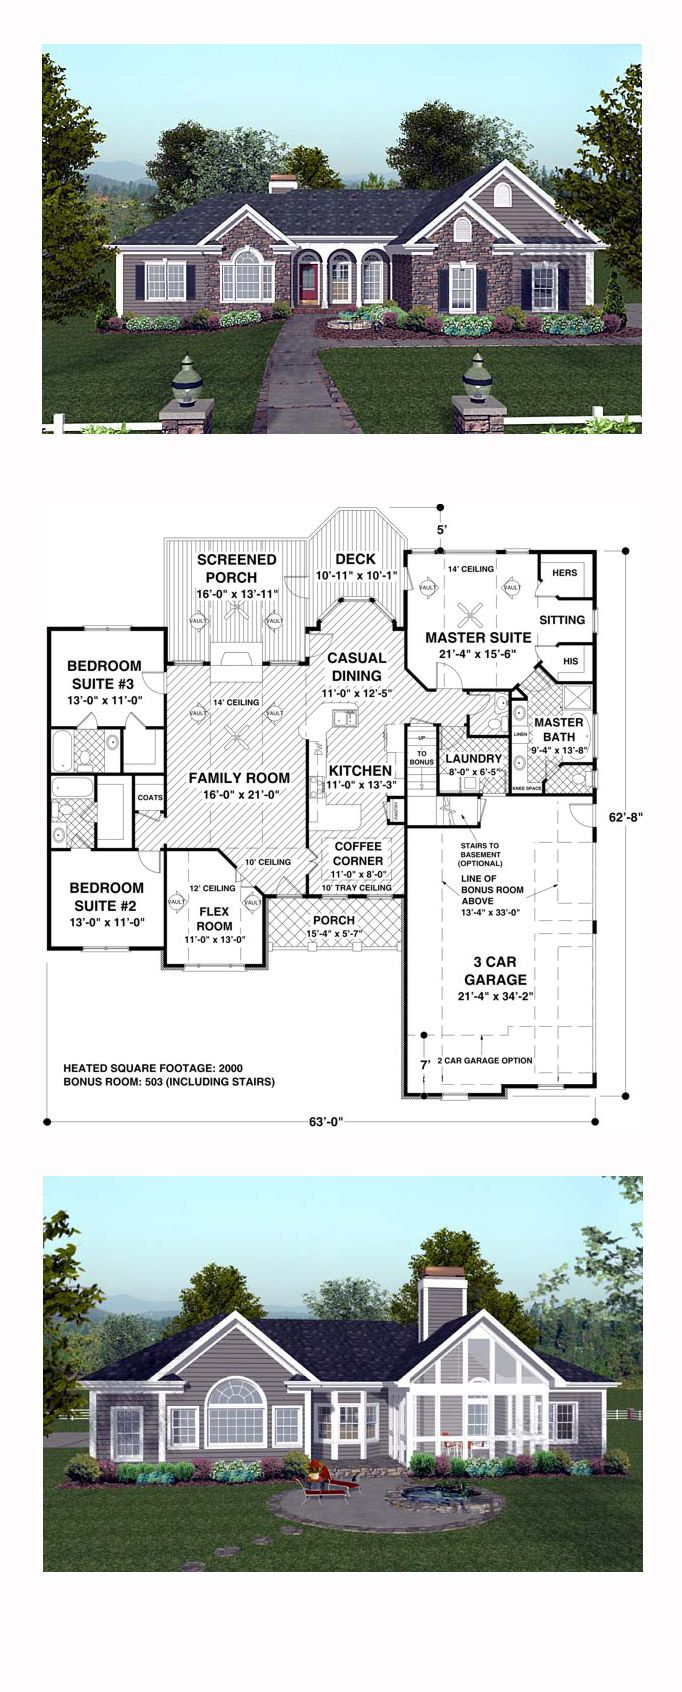 Craftsman House Plan 74811 Total Living Area 2000 Sq Ft